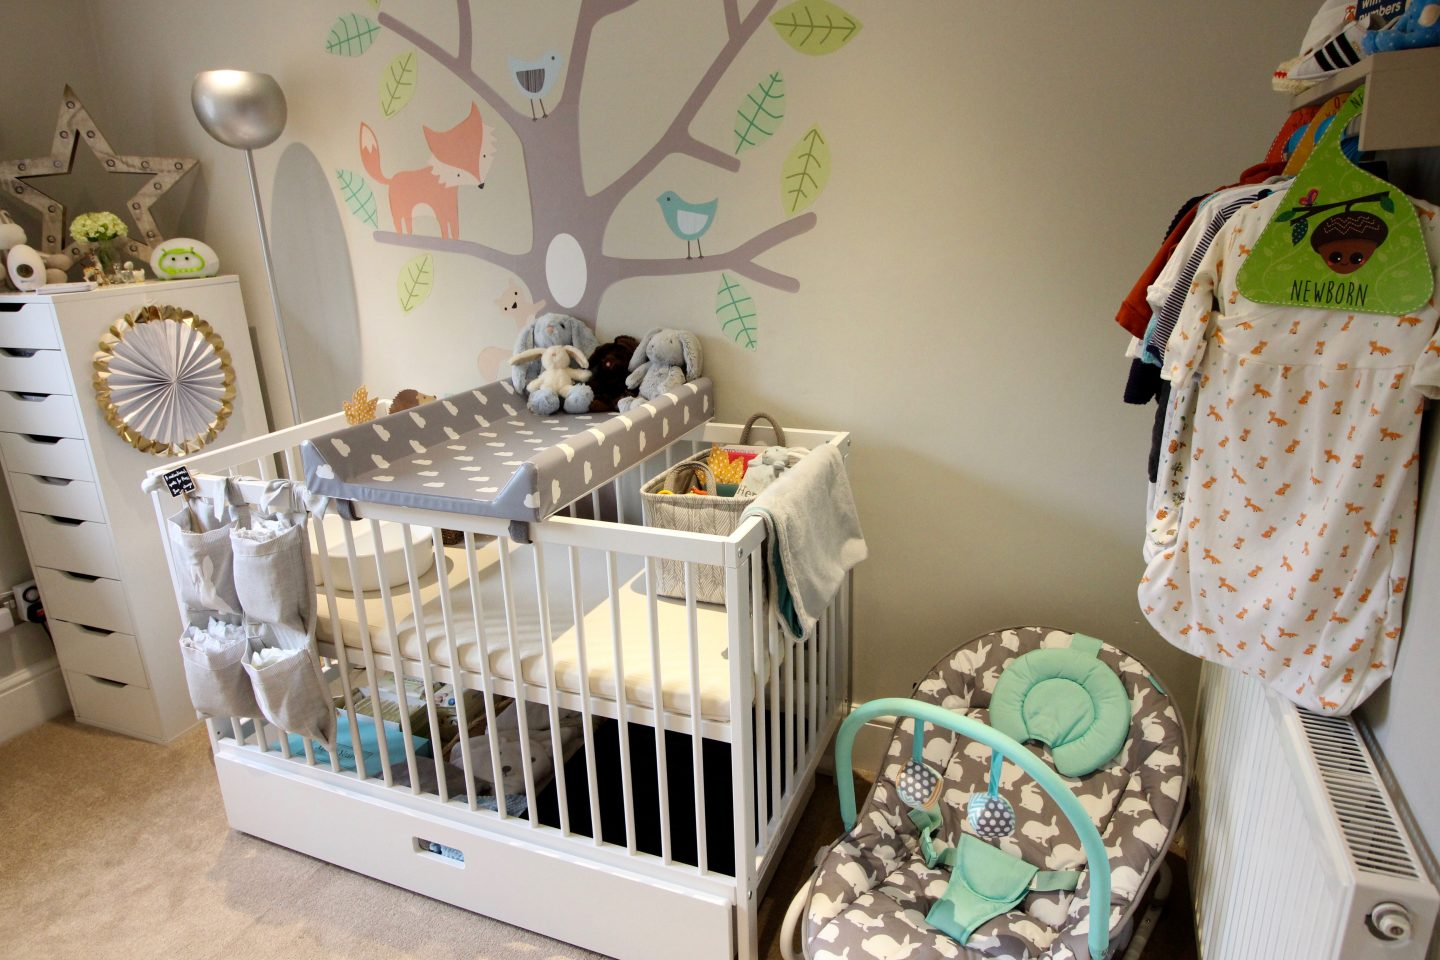 Our Woodland Themed Nursery Tour including Ikea Hacks!